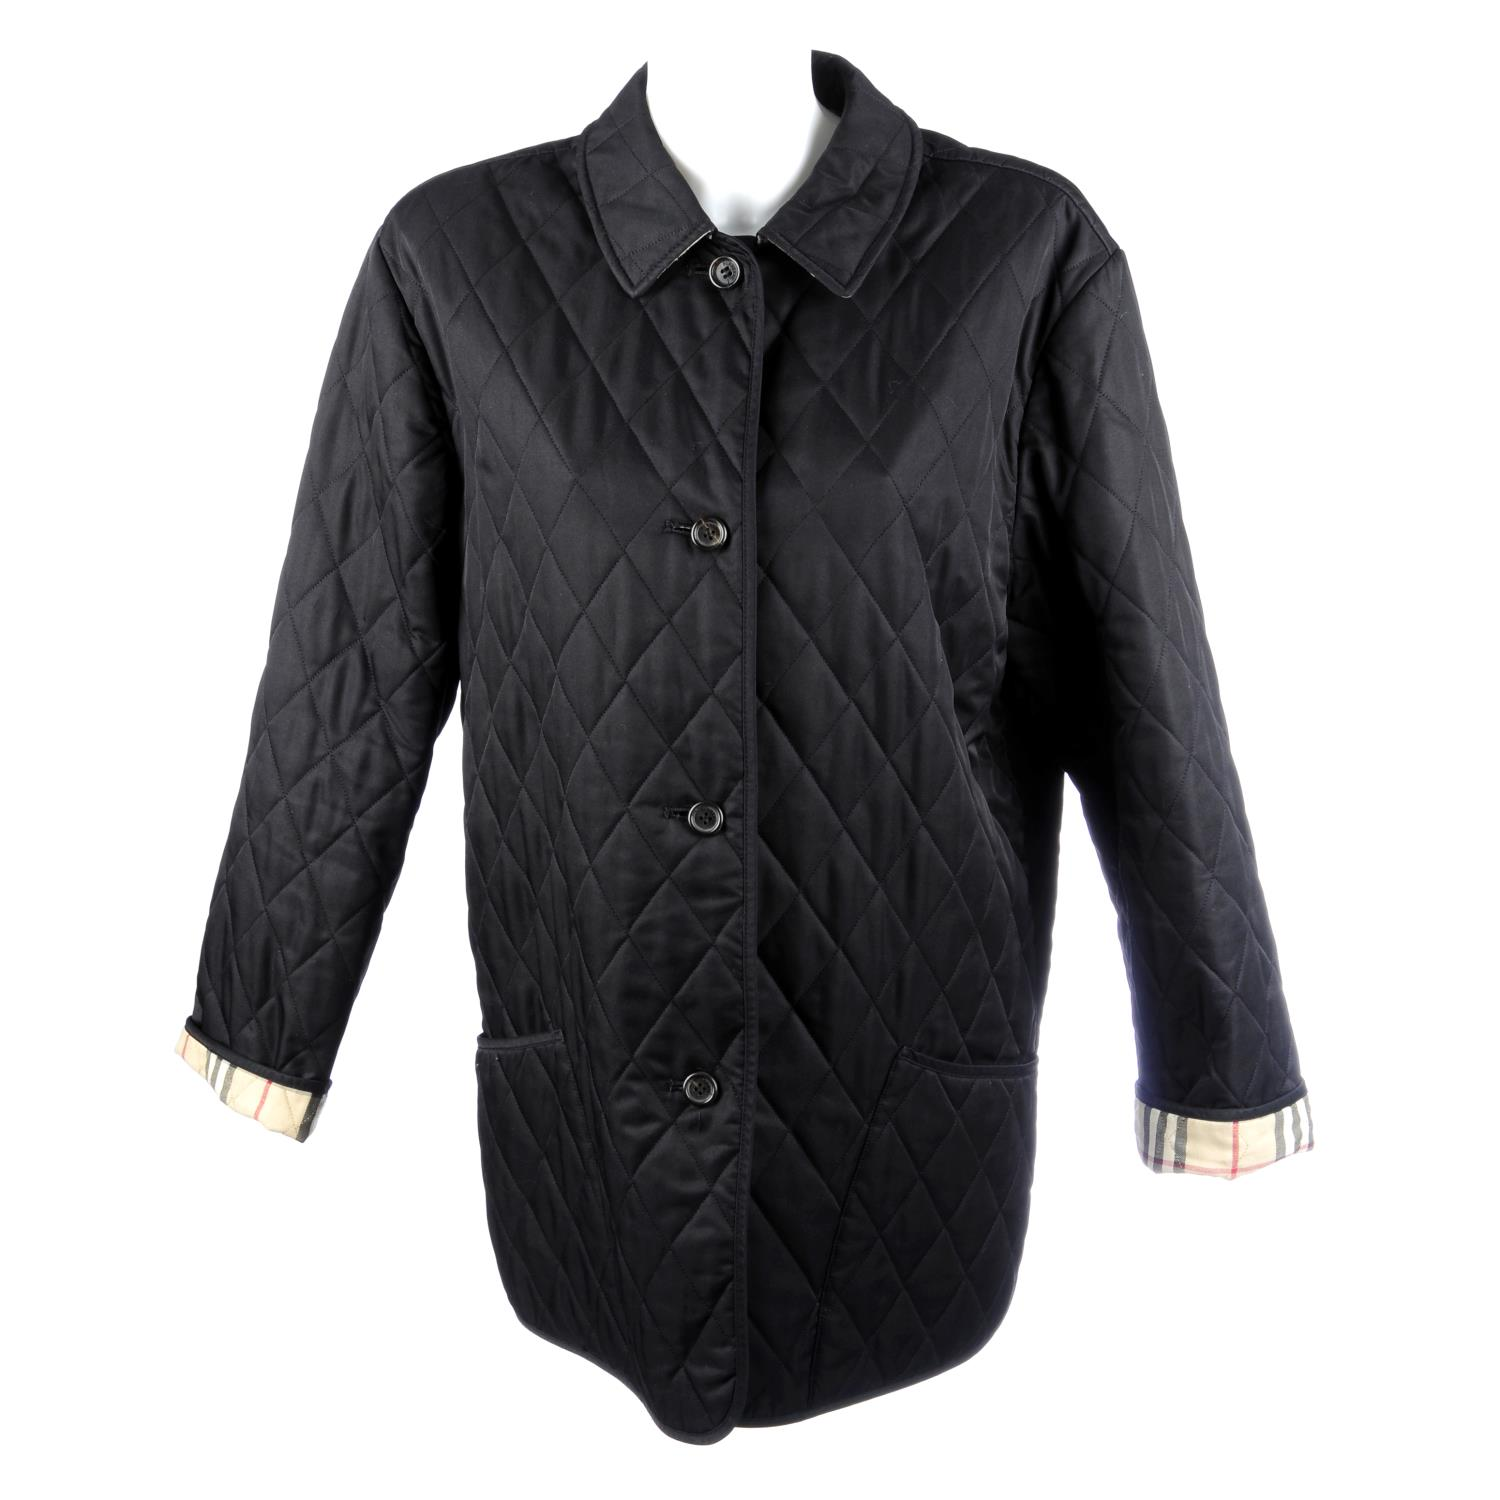 Lot 21 - BURBERRY - a woman's black quilted jacket.